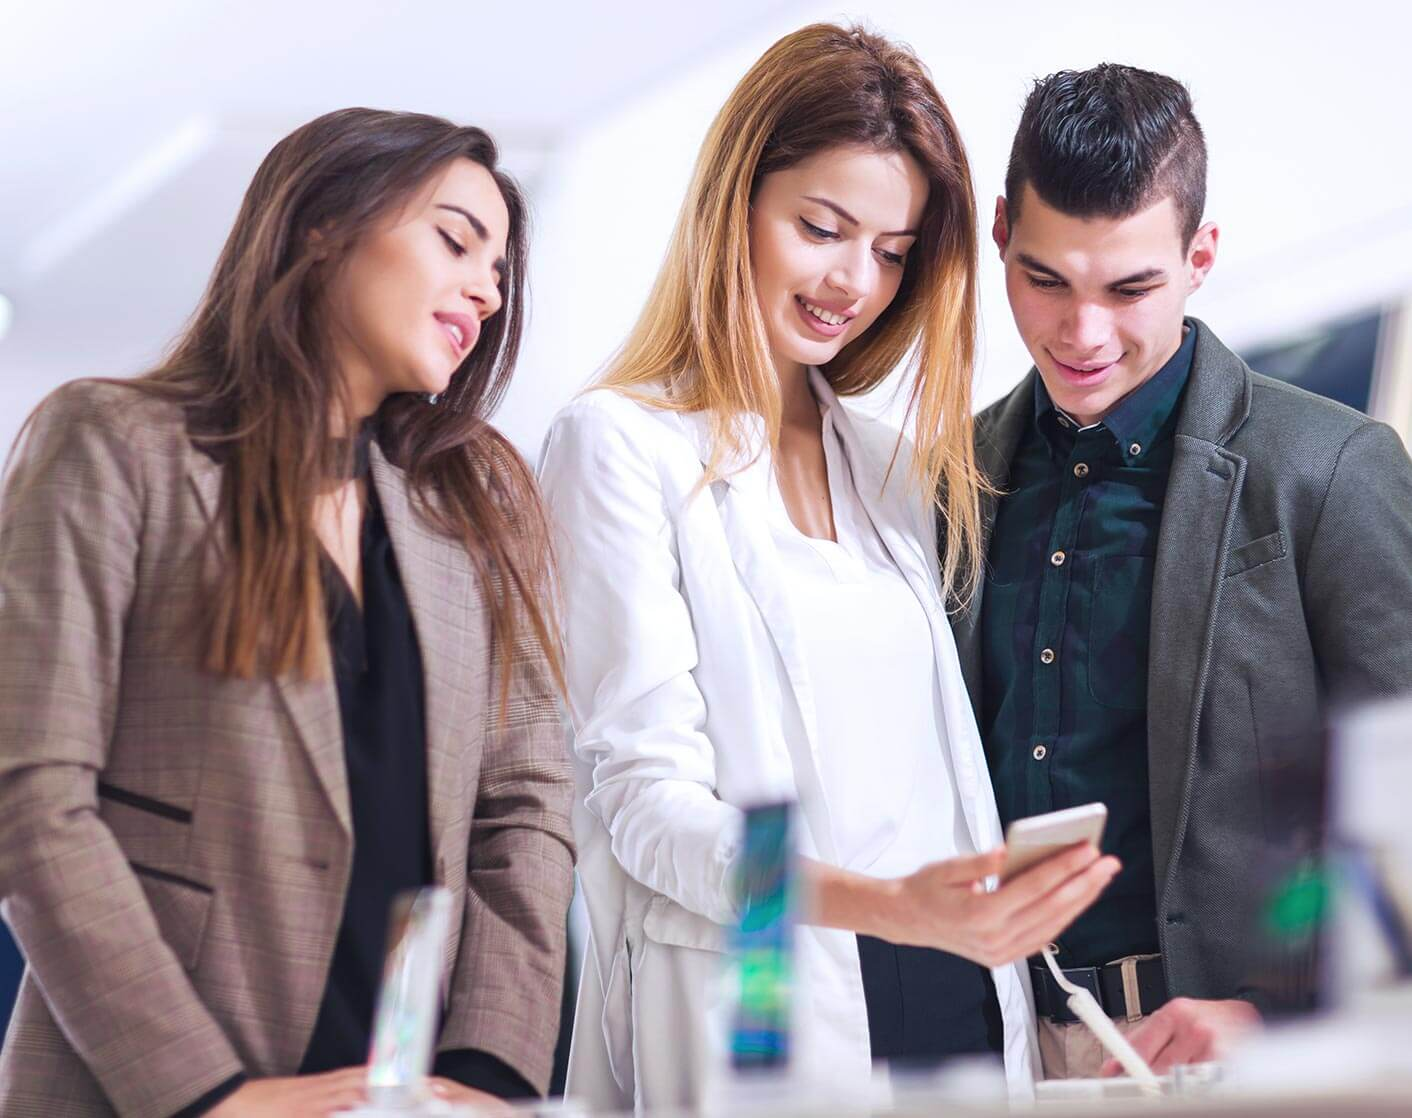 two white women and a white man in a mobile phone store looking at a display phone